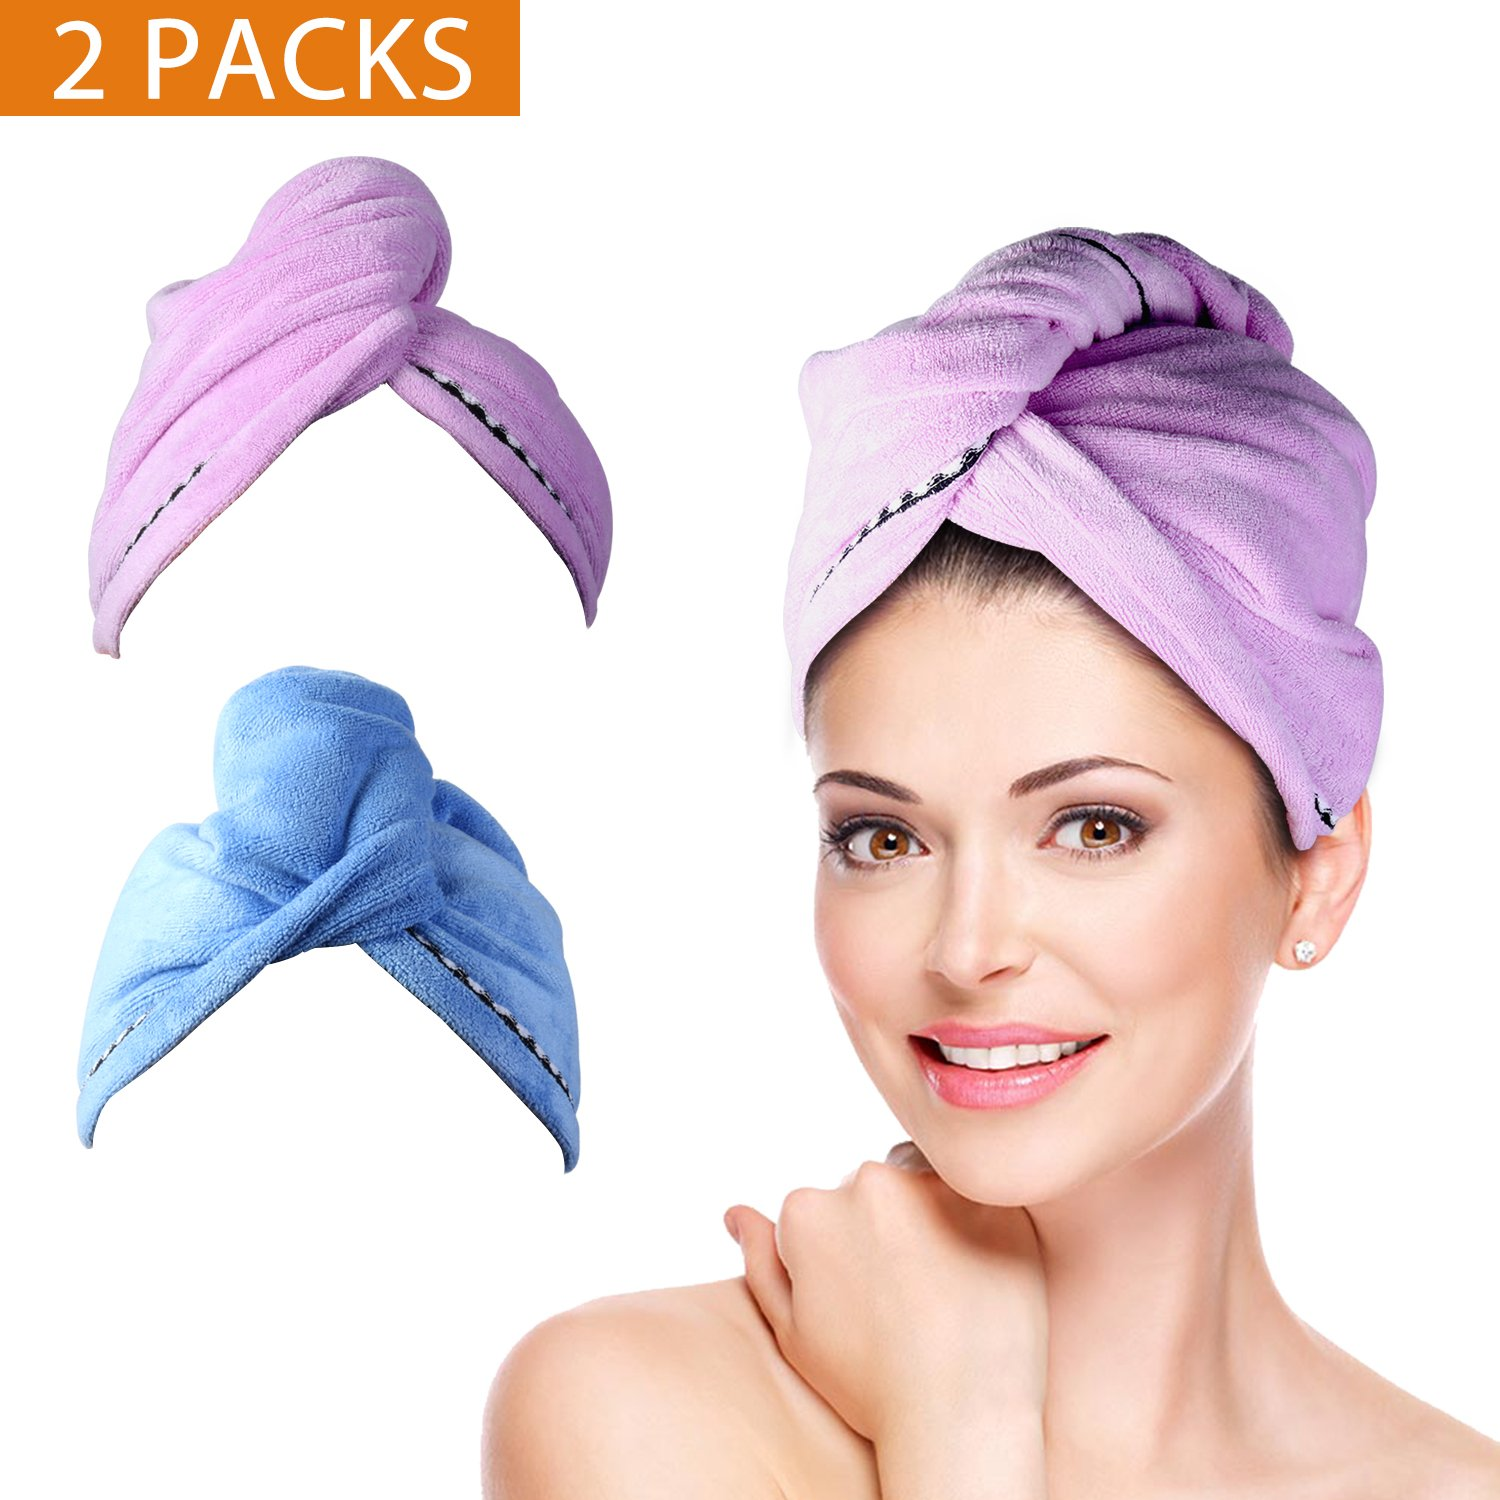 2 Pack Hair Towel Wrap Turban Microfiber Drying Bath Shower Head Towel with Buttons, Quick Magic Dryer, Dry Hair Hat, Wrapped Bath Cap By Duomishu good 23